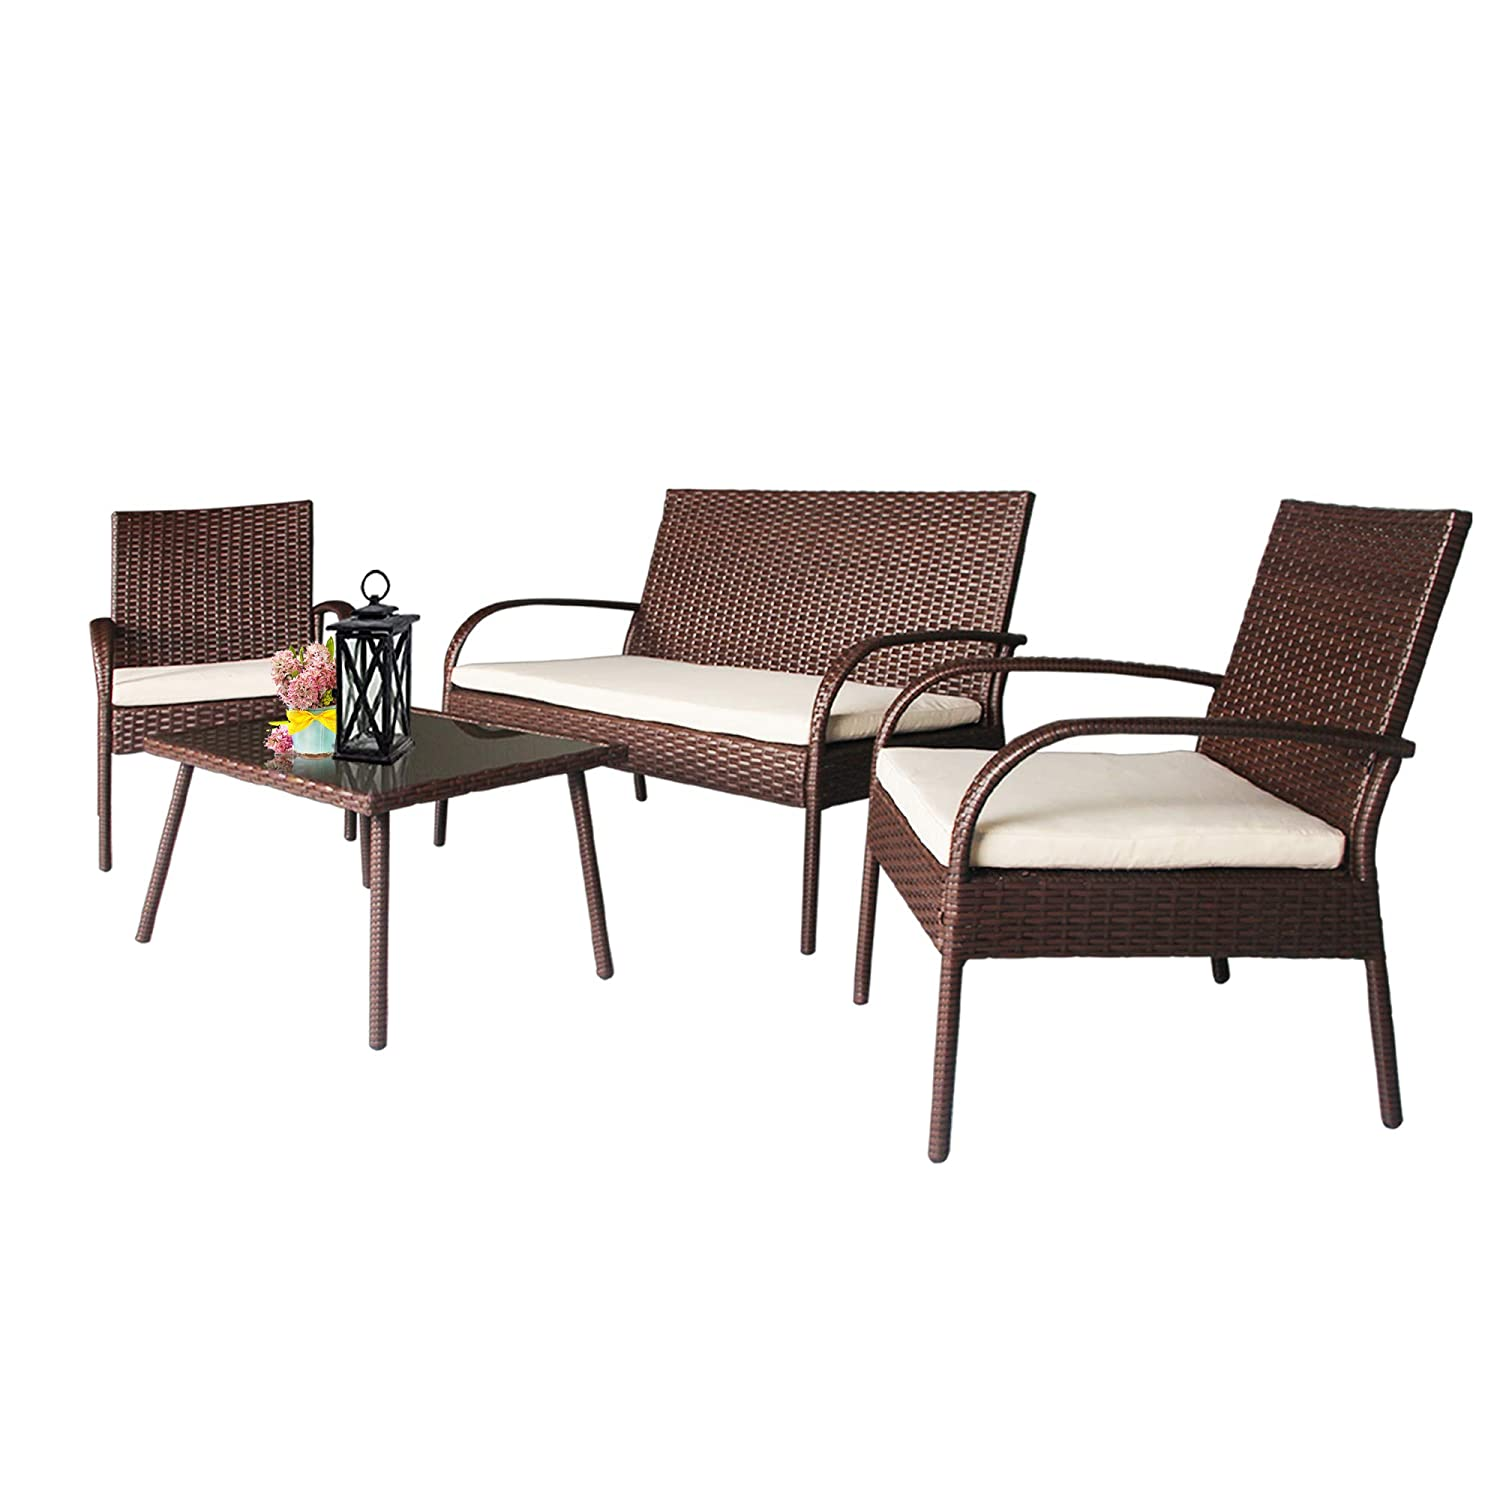 Homevibes outdoor furniture 4 pieces wicker rattan conversation sets easy assembly with ergonomic comfortable thick cushions modern style non slip foot